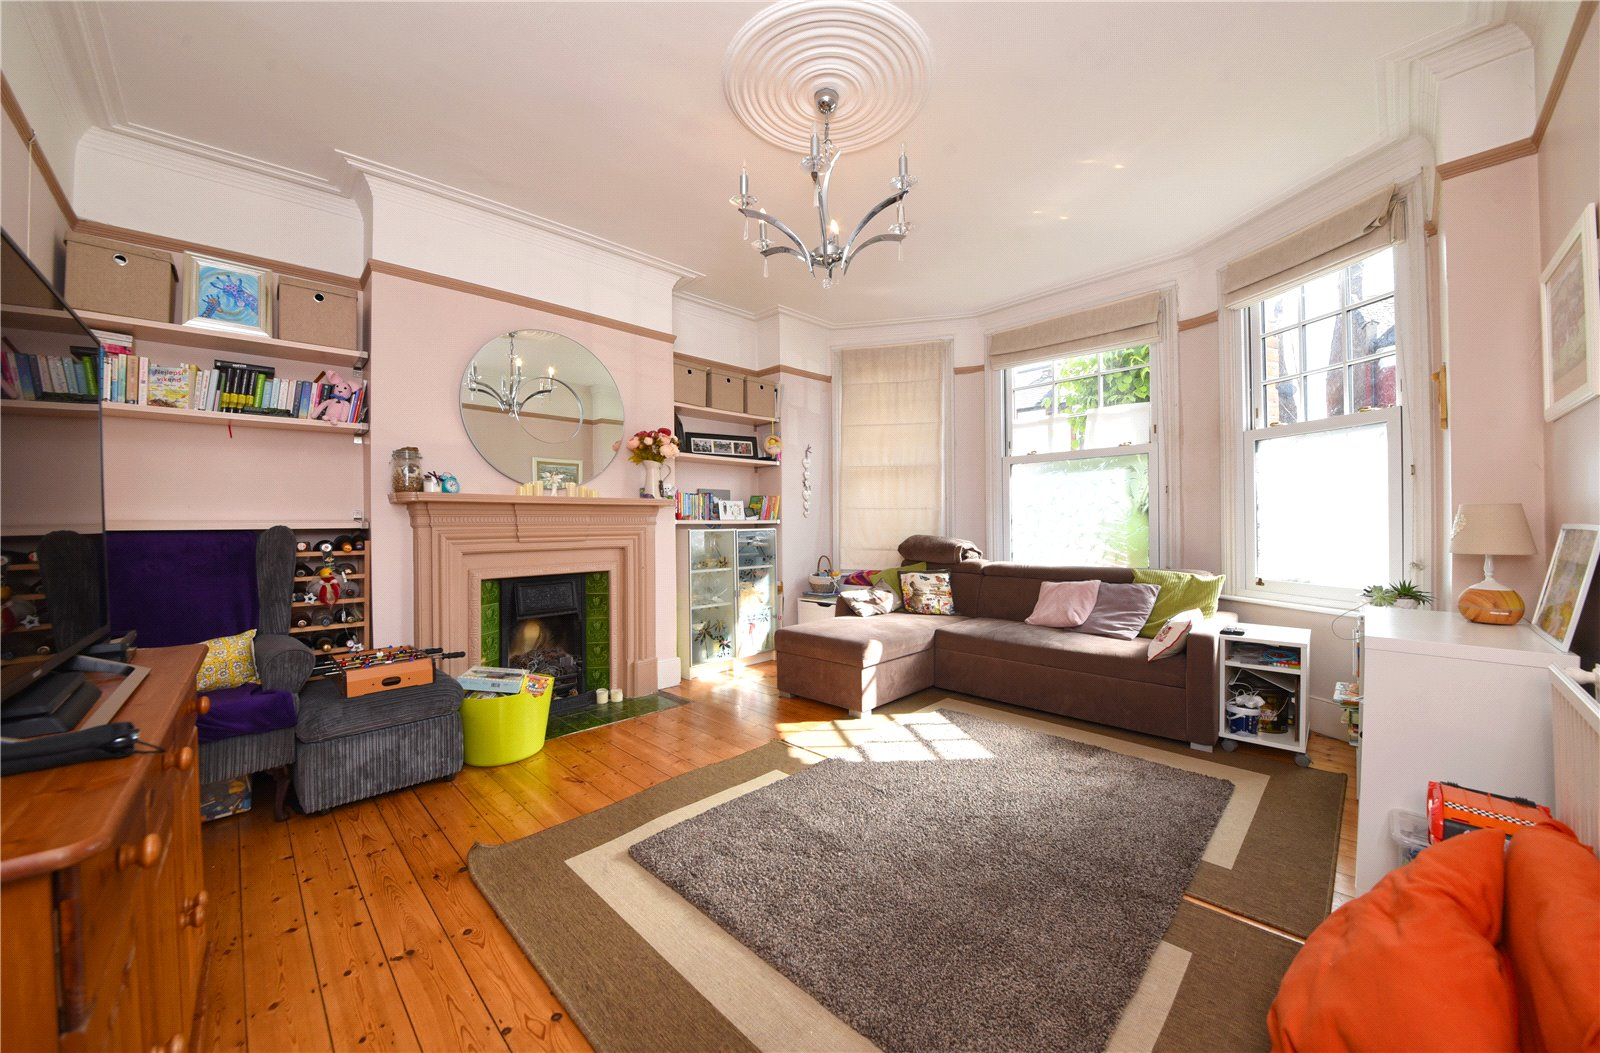 2 bed apartment for sale in East Finchley, N2 0SX 1